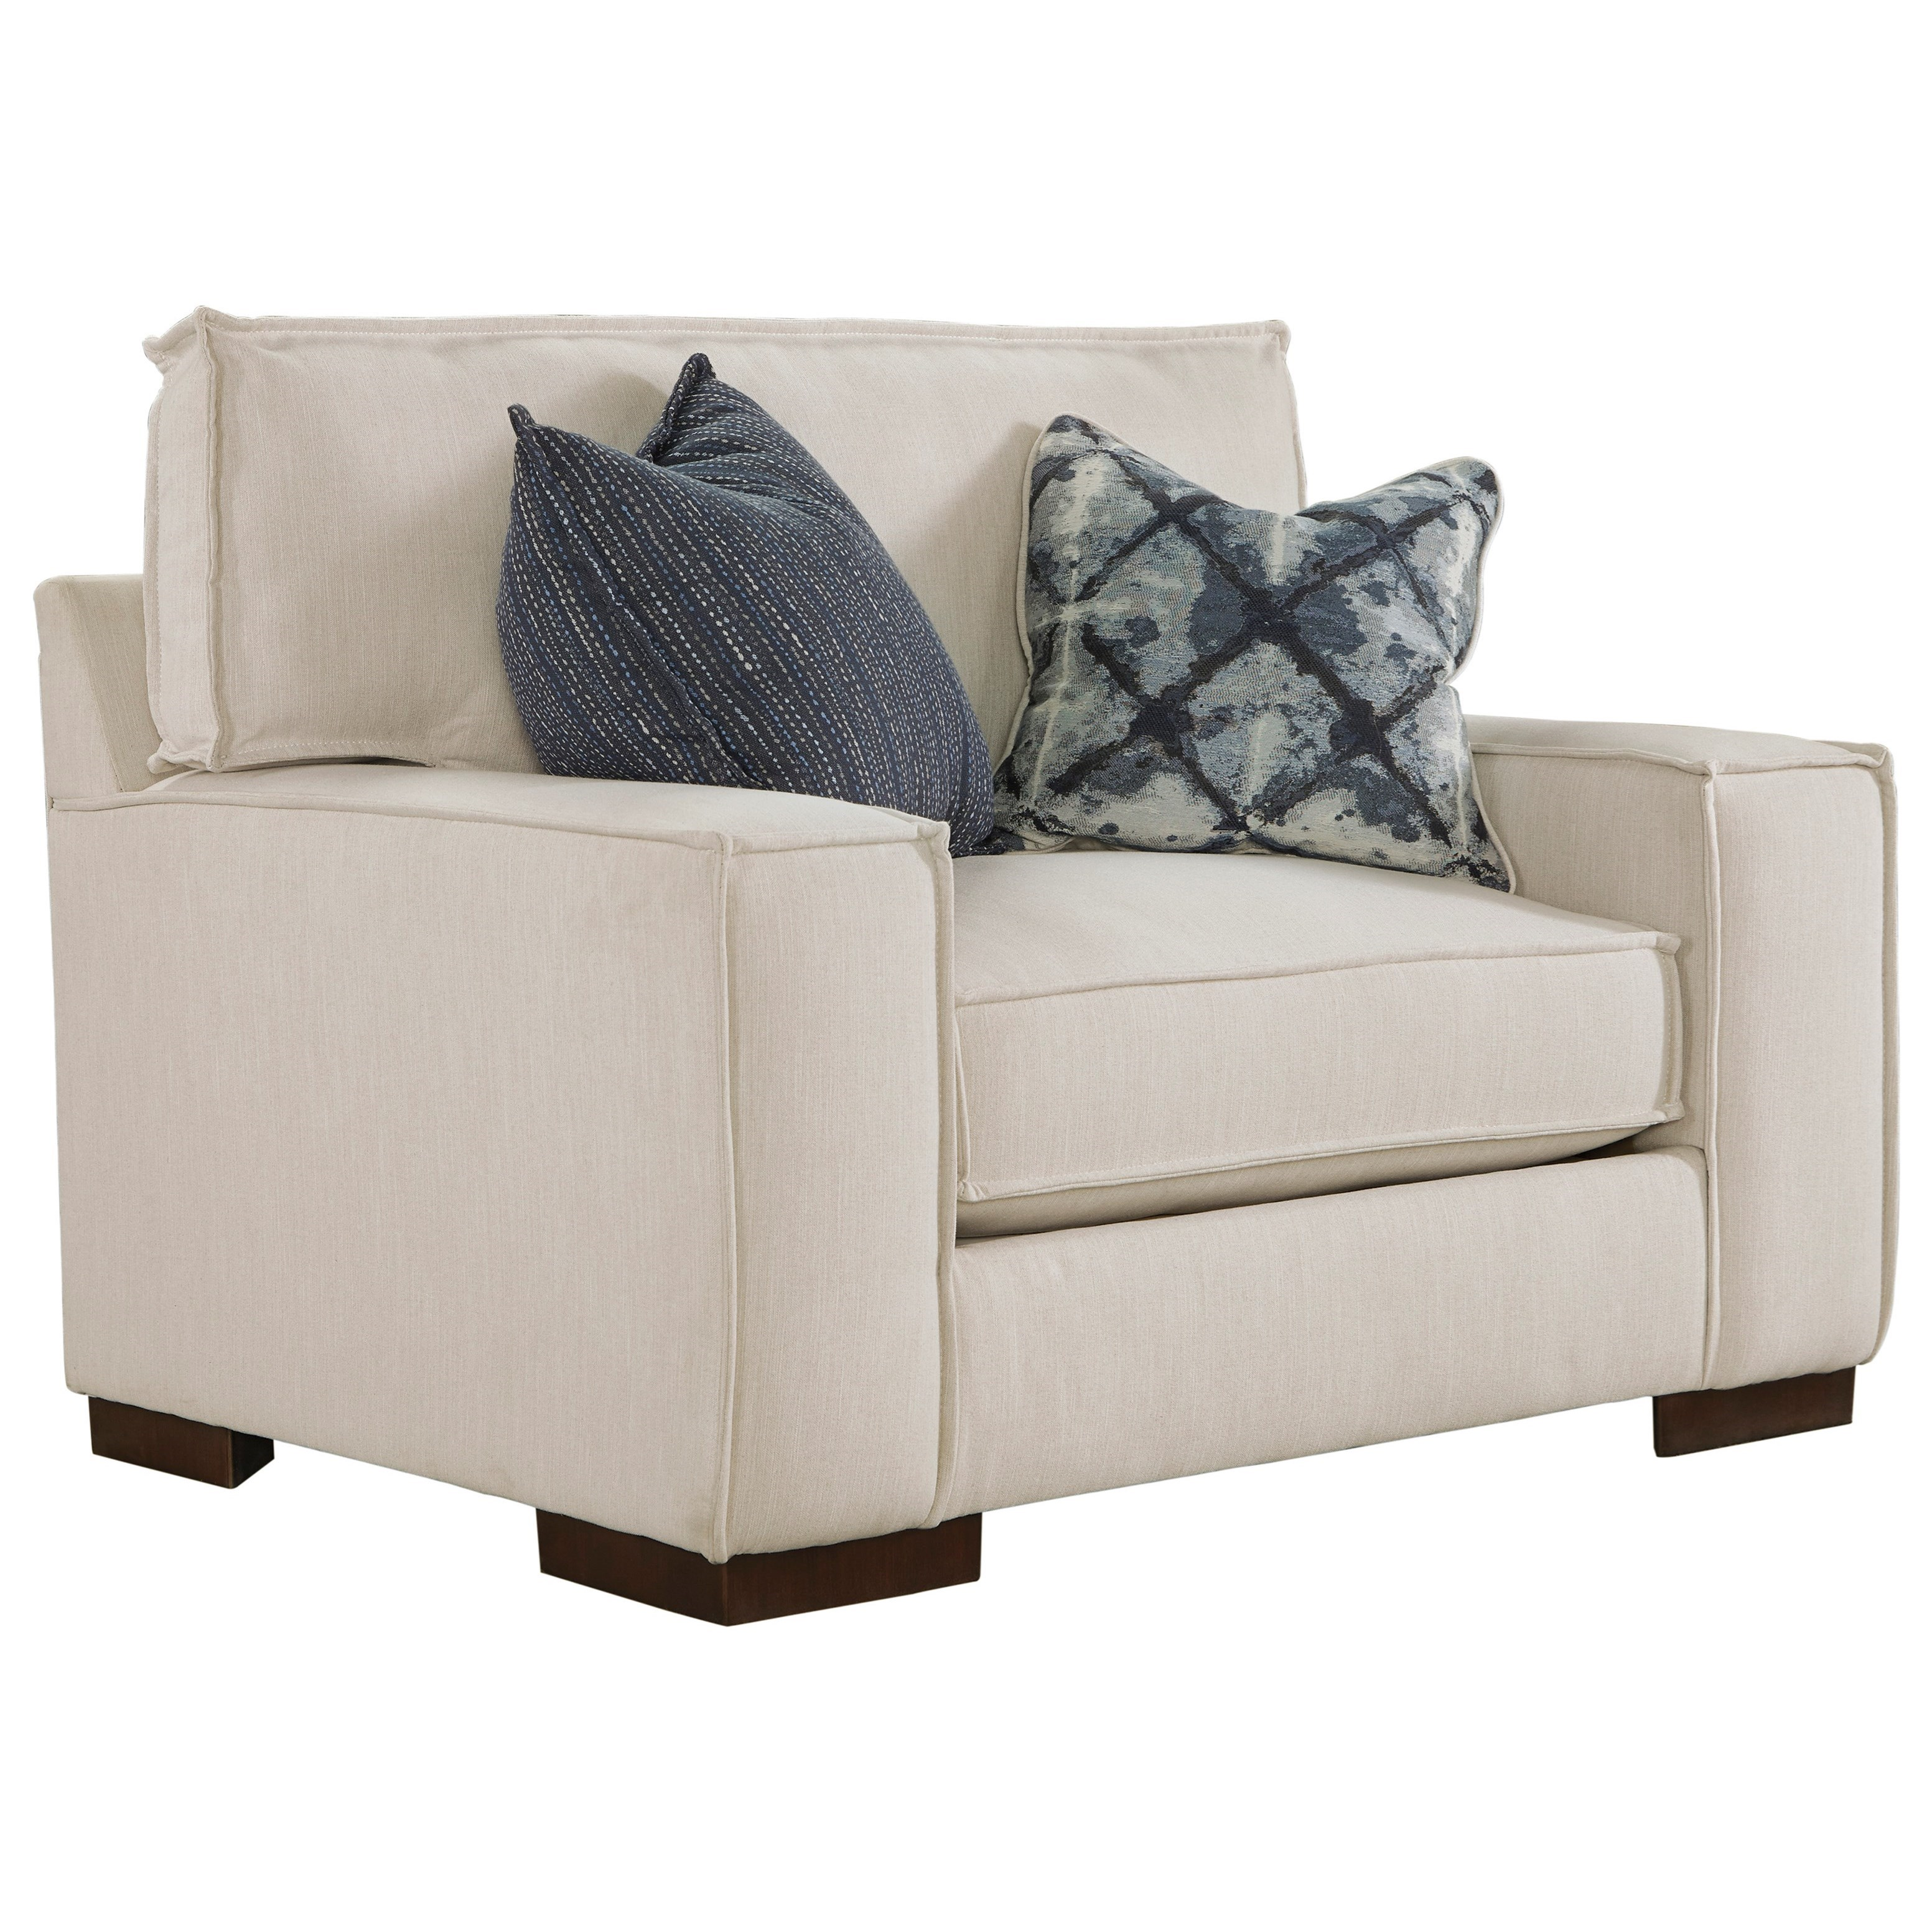 Benchcraft Kendleton Modern Chair And A Half With Reversible UltraPlush Seat